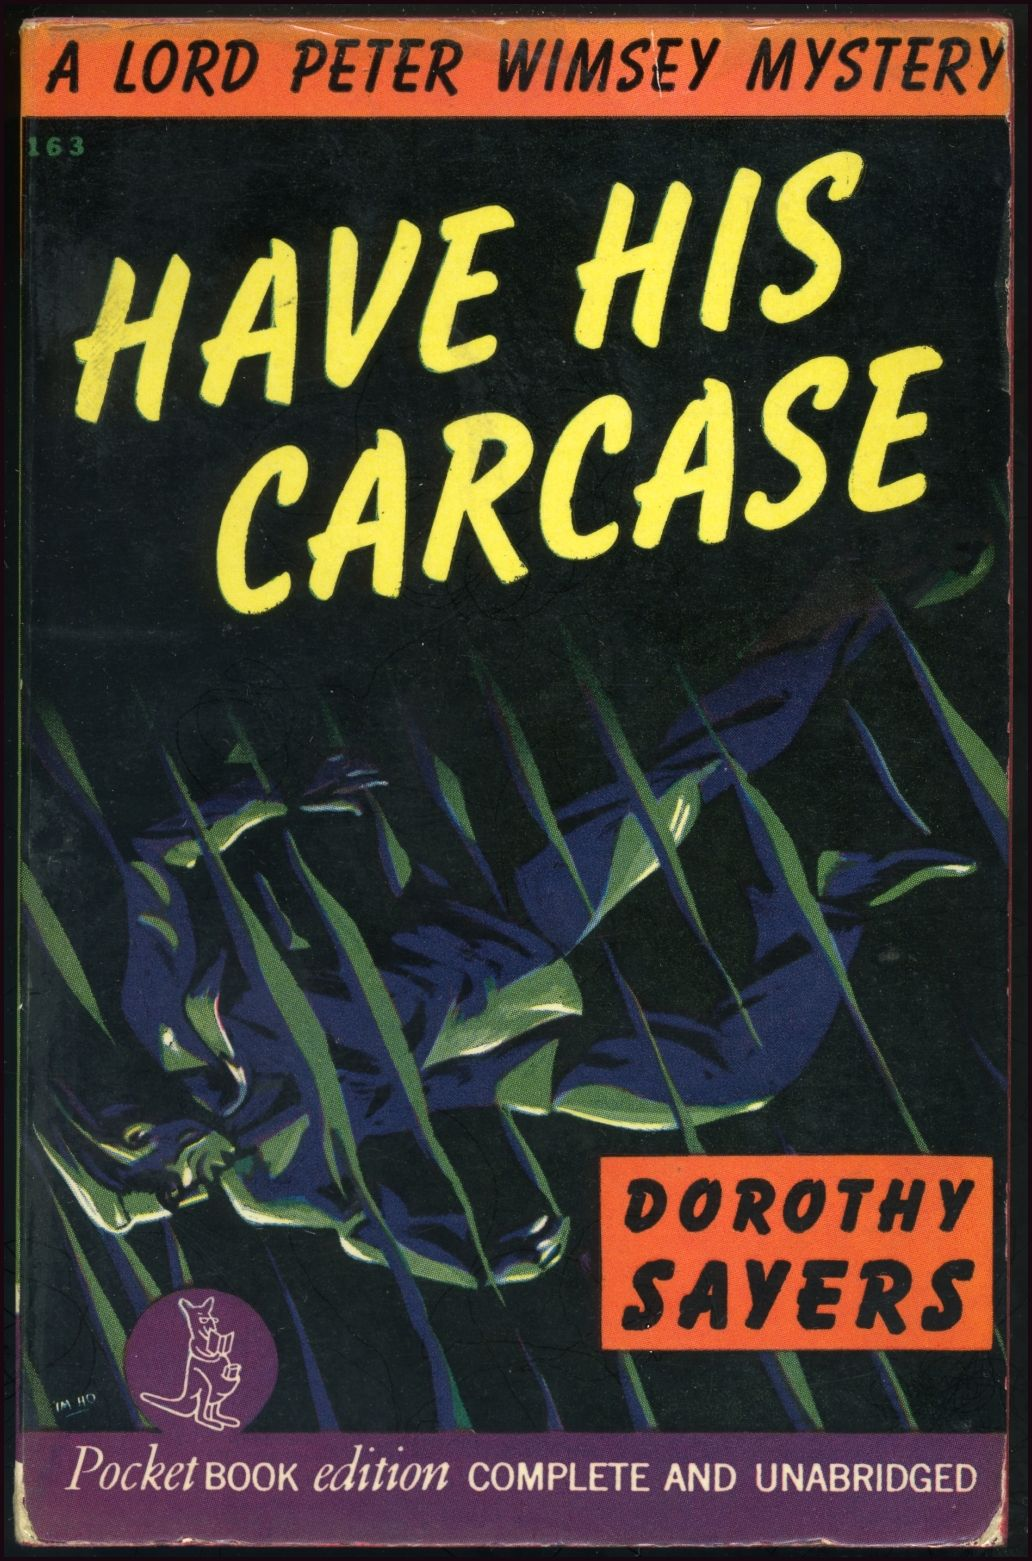 Have his carcase by dorothy sayers httpthegoldenagesite